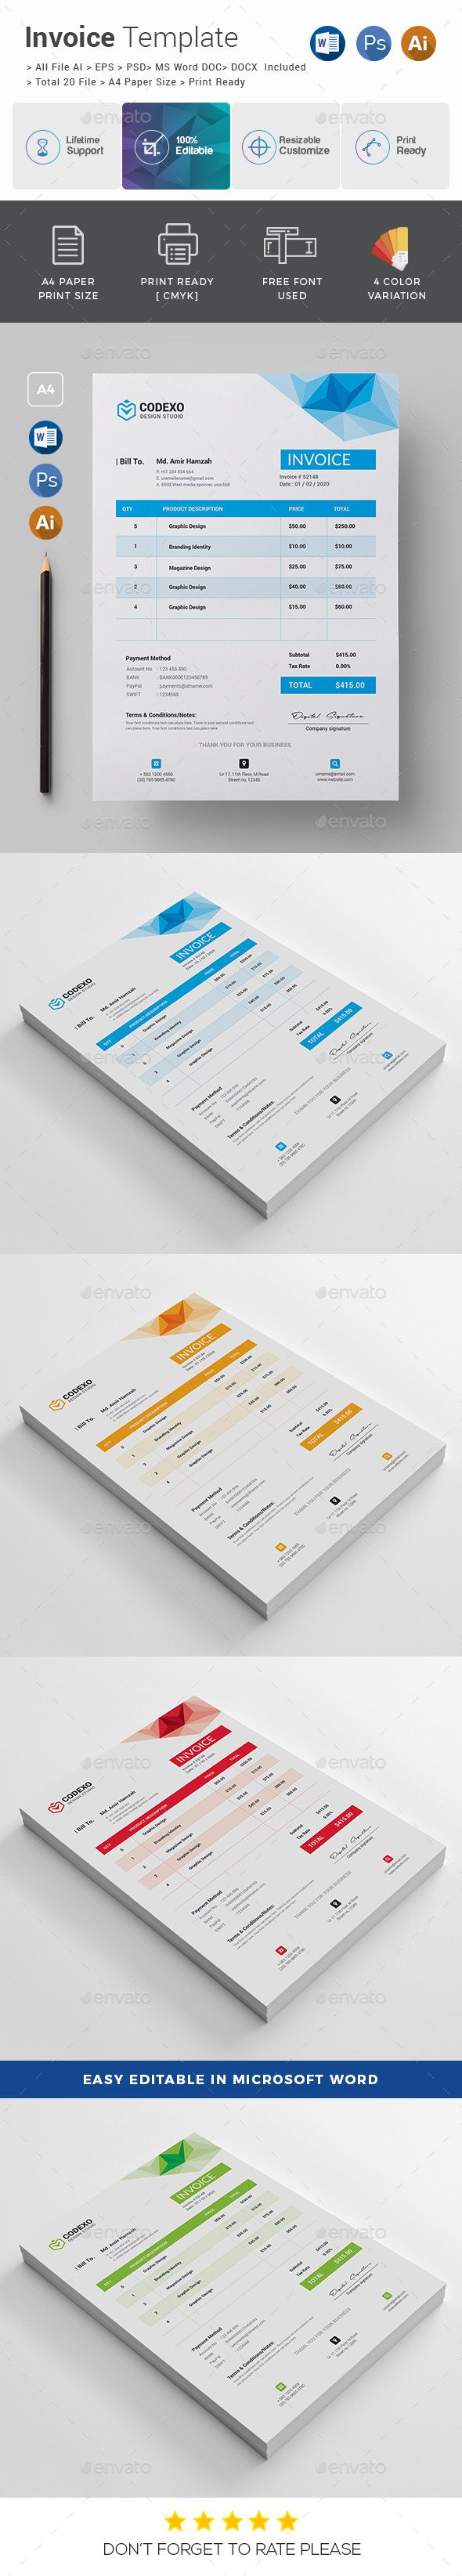 Invoice      4 Color Versions     A4 Paper Size With Bleeds     Quick and easy to customize templates     Change Customize easily in MS WORD, PSD & Illustrator     Professional and clean structured files